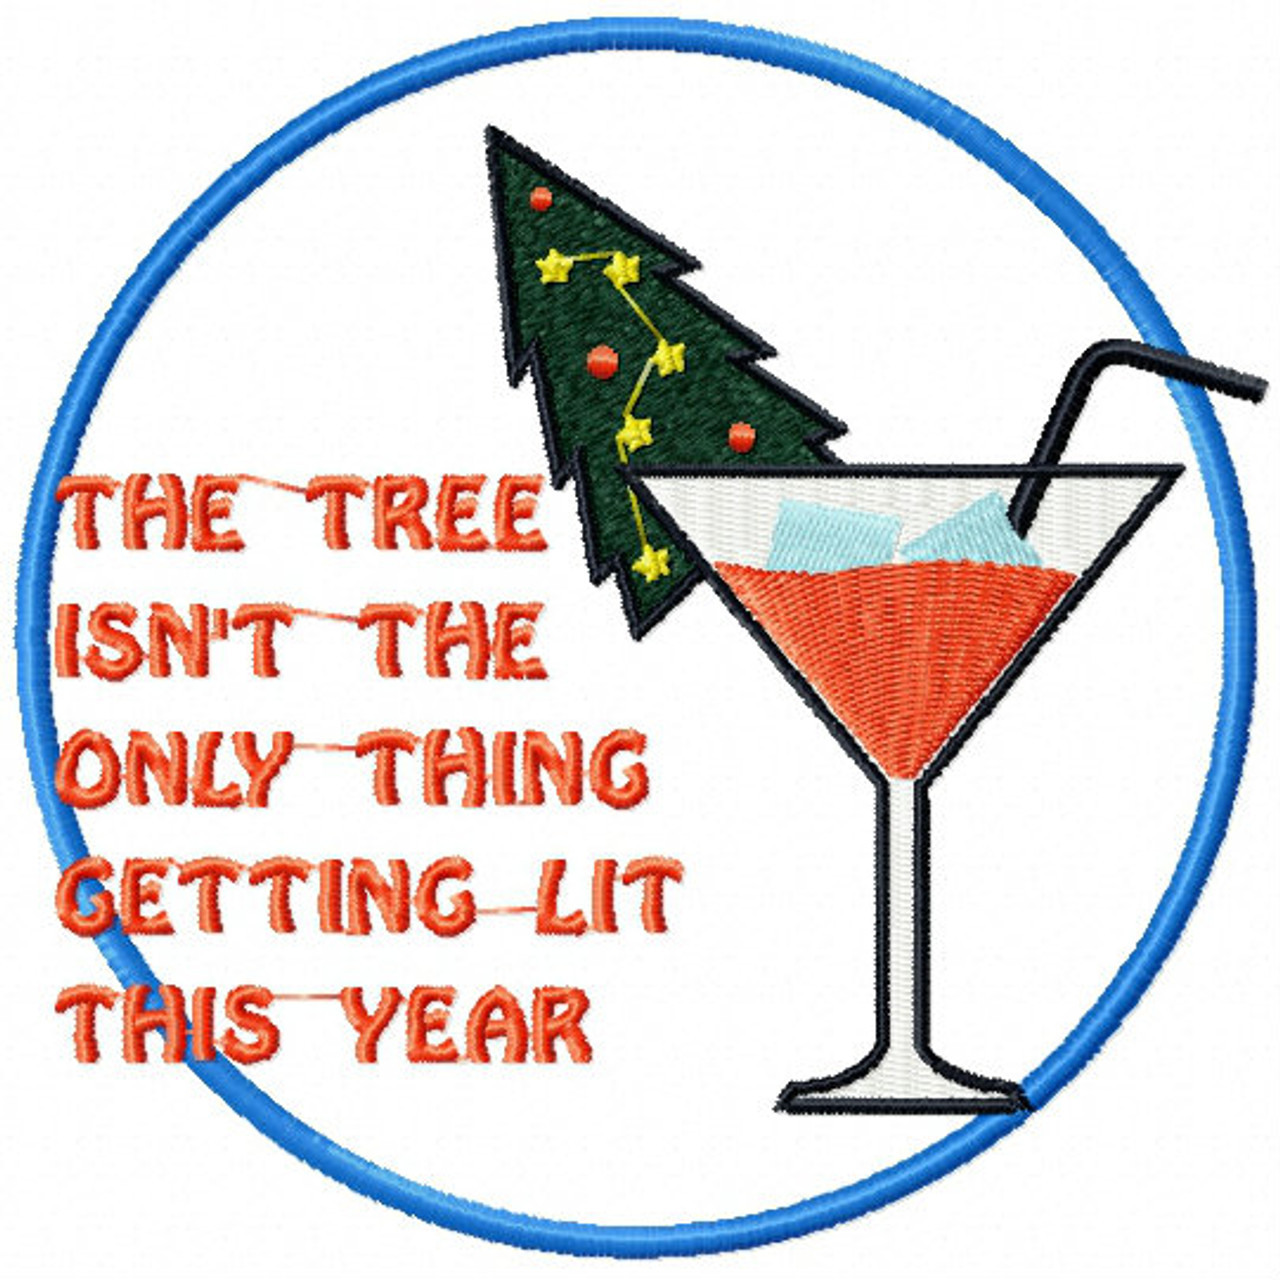 Christmas Humor Images.Christmas Tree Getting Lit Christmas Humor Booze 05 Machine Embroidery Design